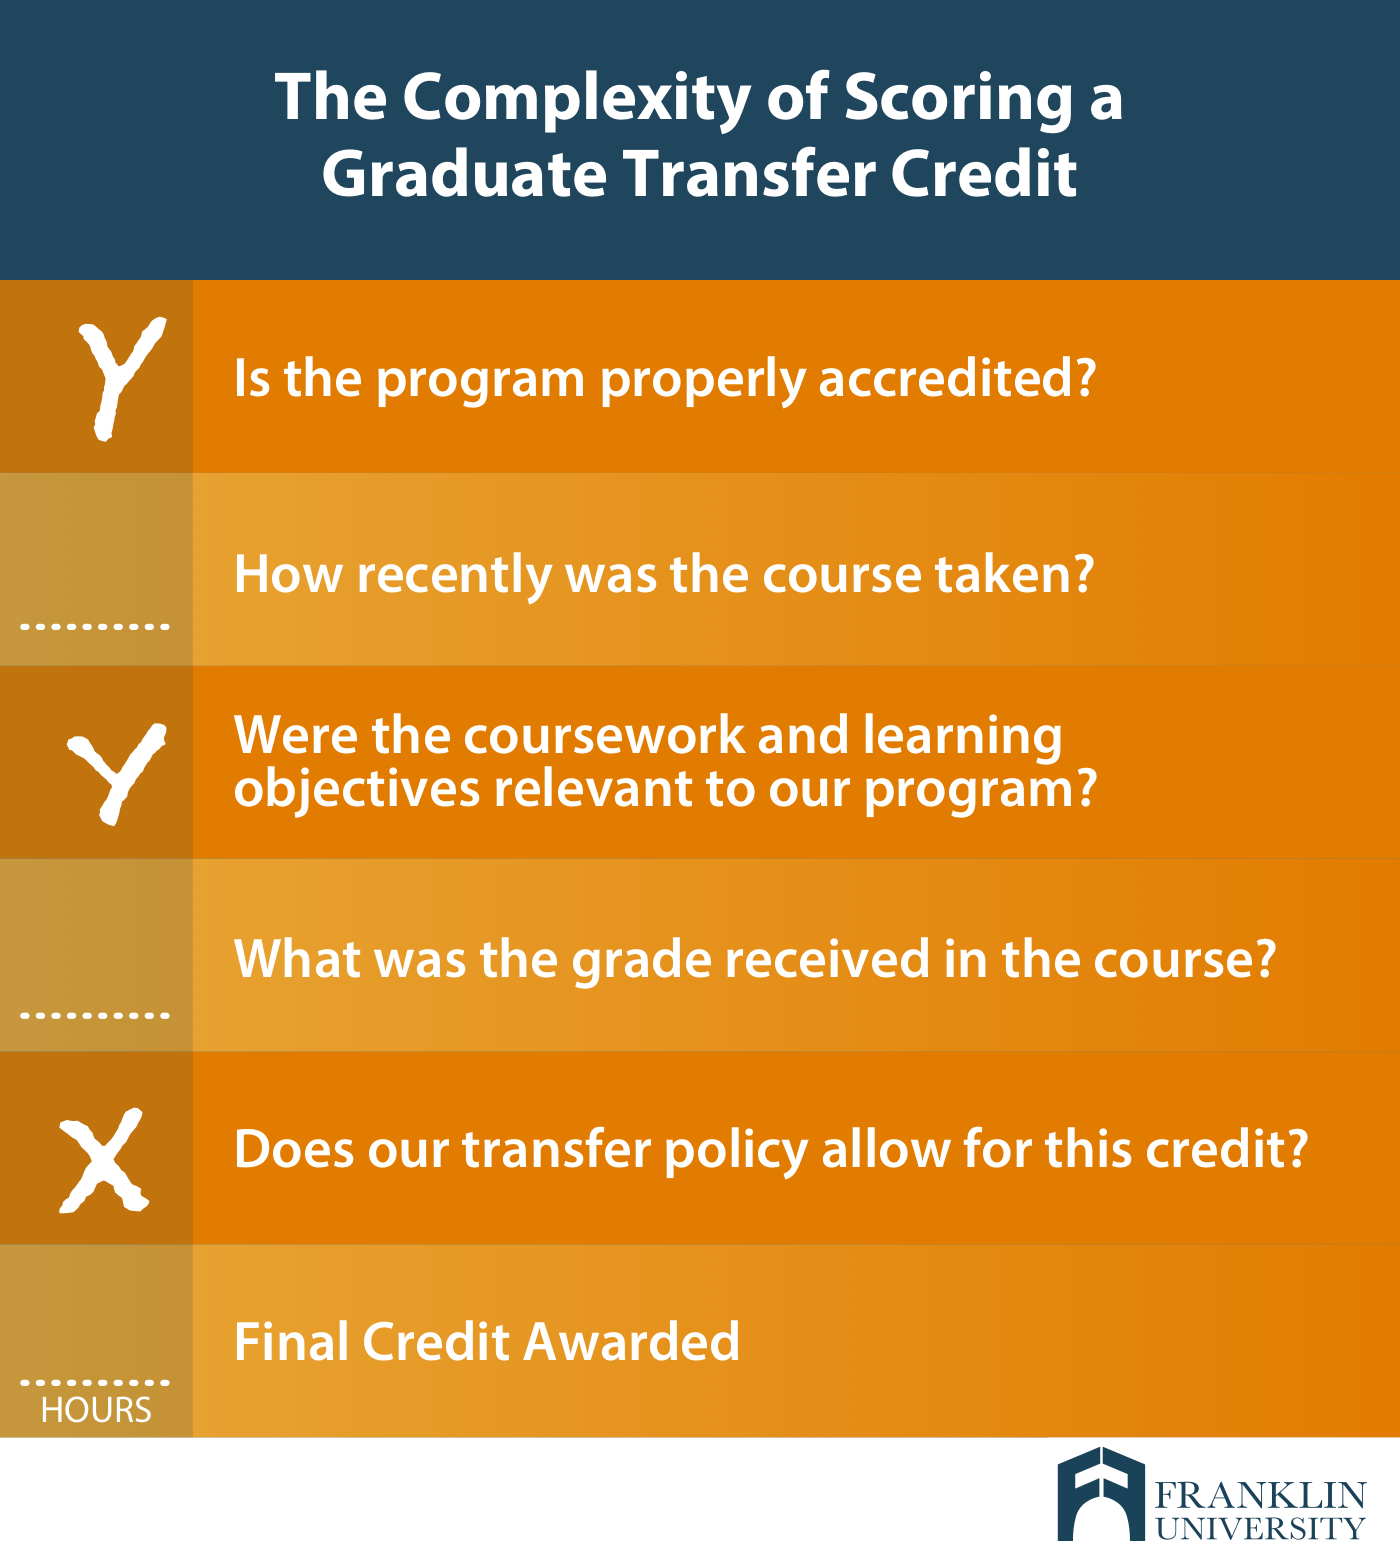 graphic describes the complexity of scoring a graduate transfer credit